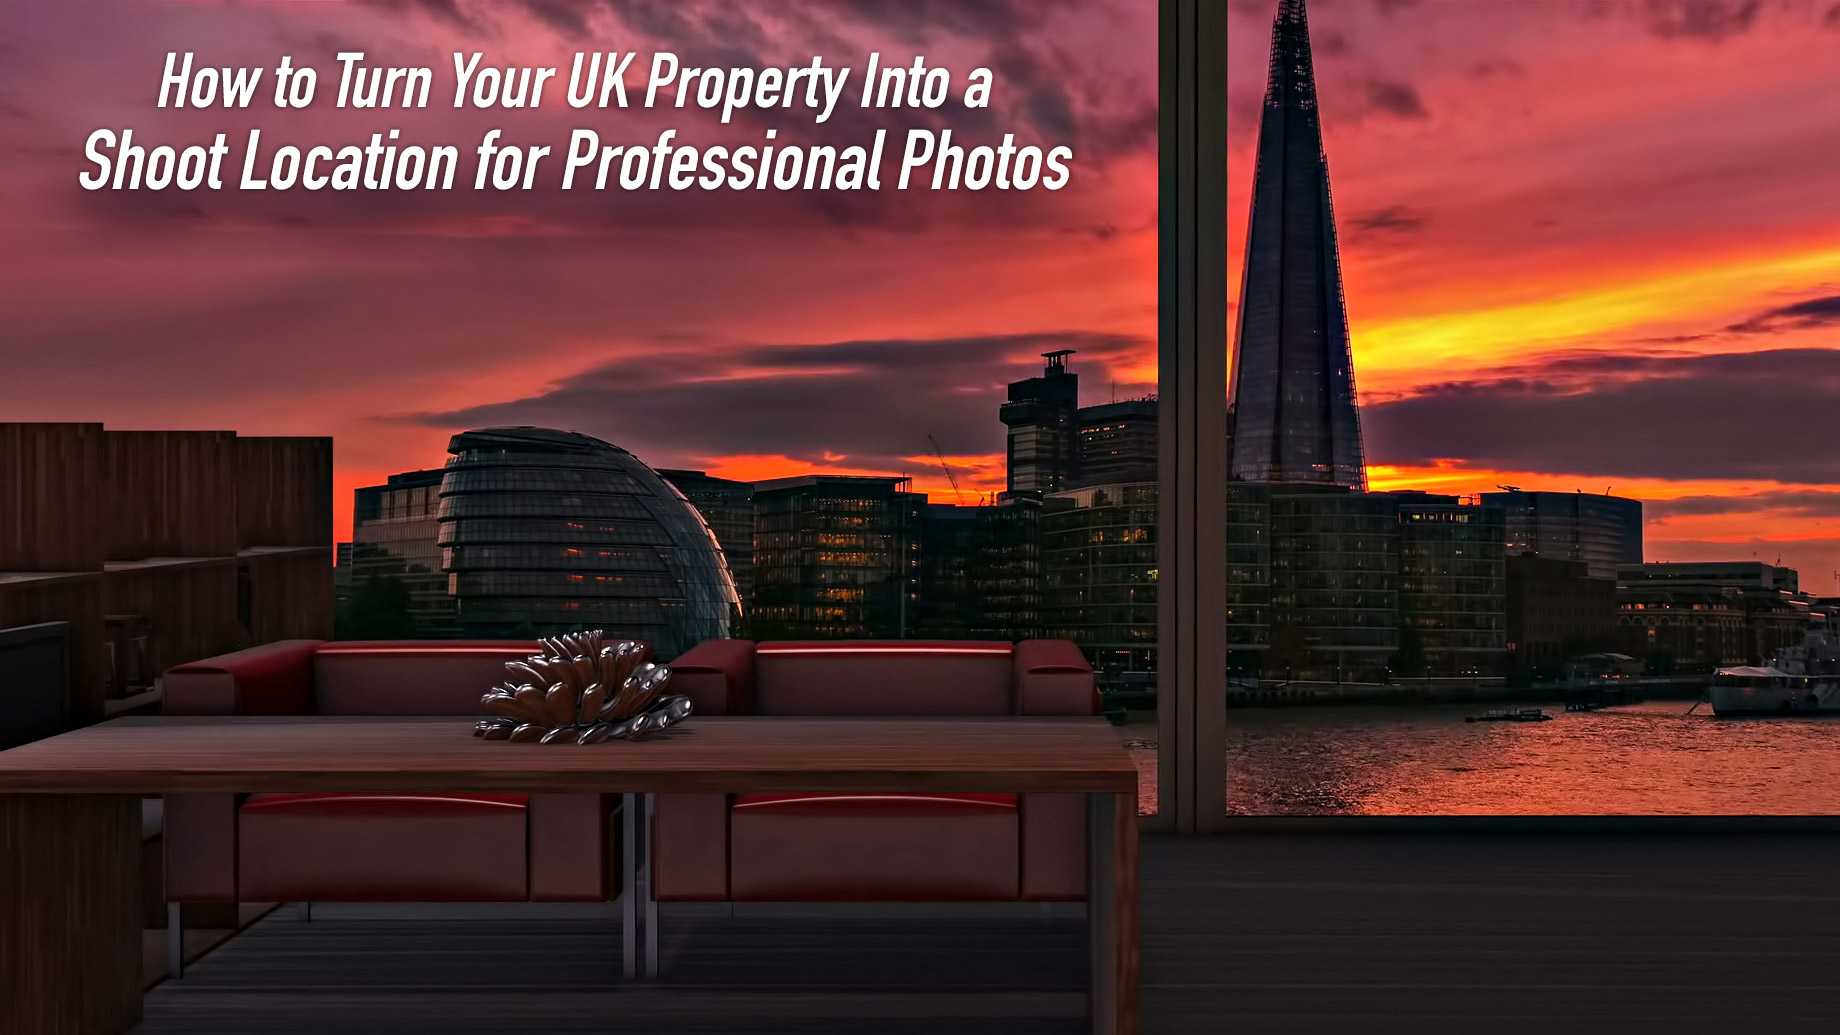 How to Turn Your UK Property Into a Shoot Location for Professional Photos